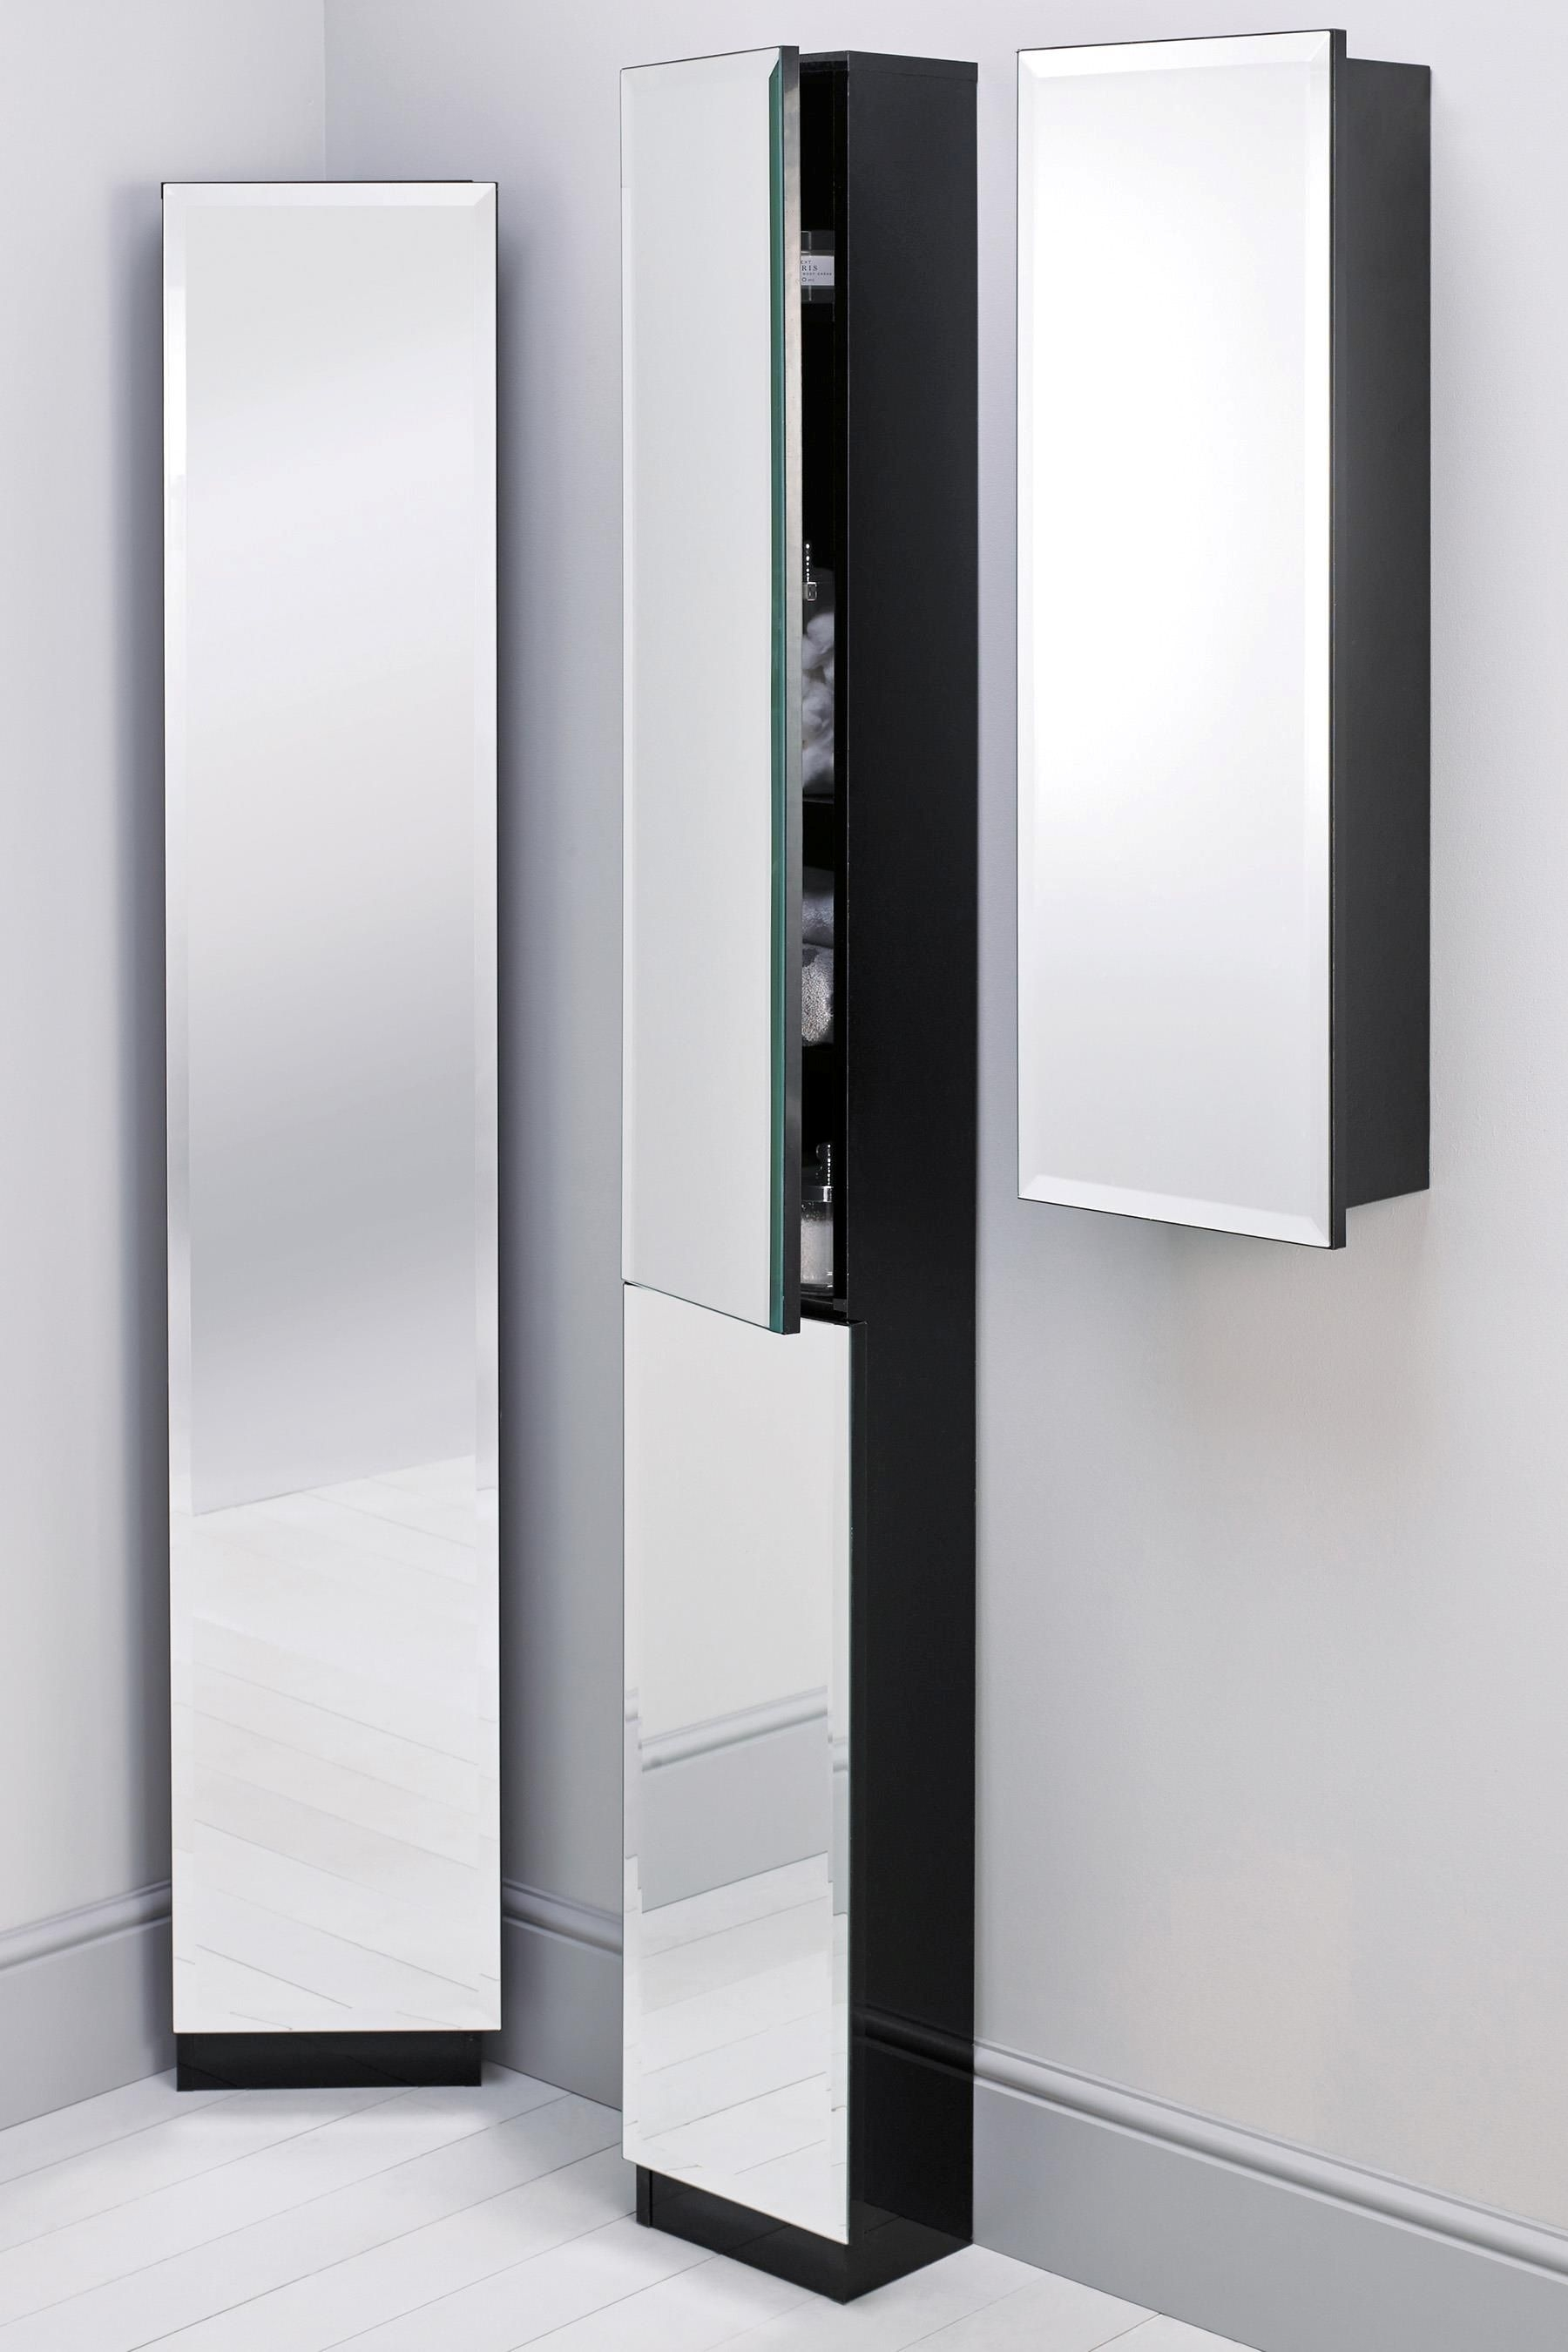 Bathroom Cabinet White With Satinised Glass Doors – Tall Cupboard – Storage Room